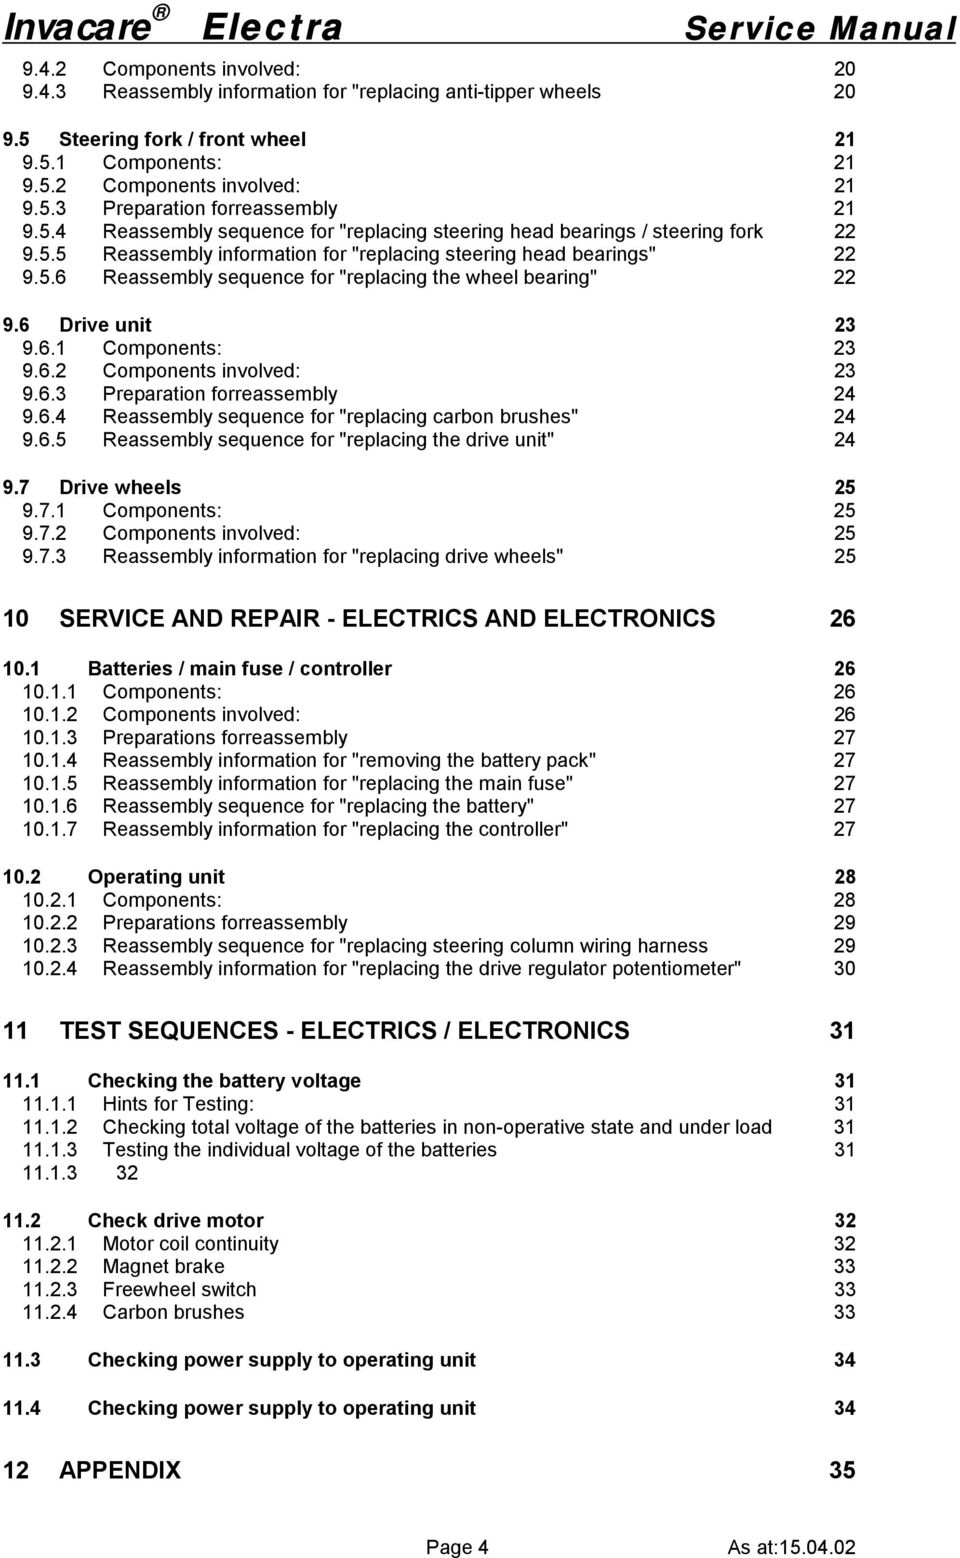 Invacare Electra Scooter Service Manual Pdf Steering Column Wiring Harness 6 Drive Unit 3 96 Components Involved